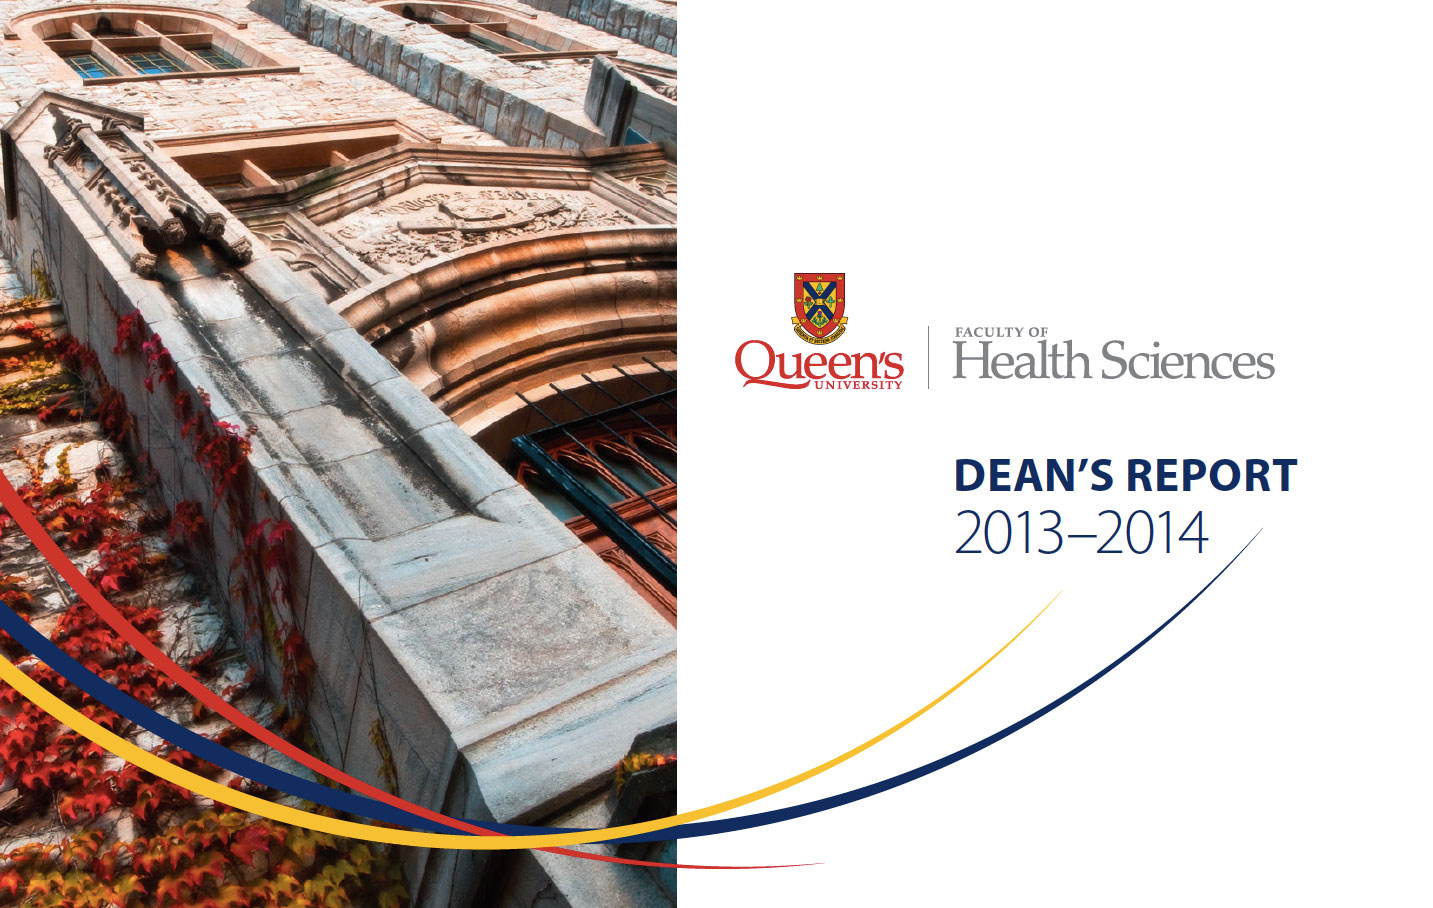 Dean's Report : Faculty of Health Sciences 2013-2014